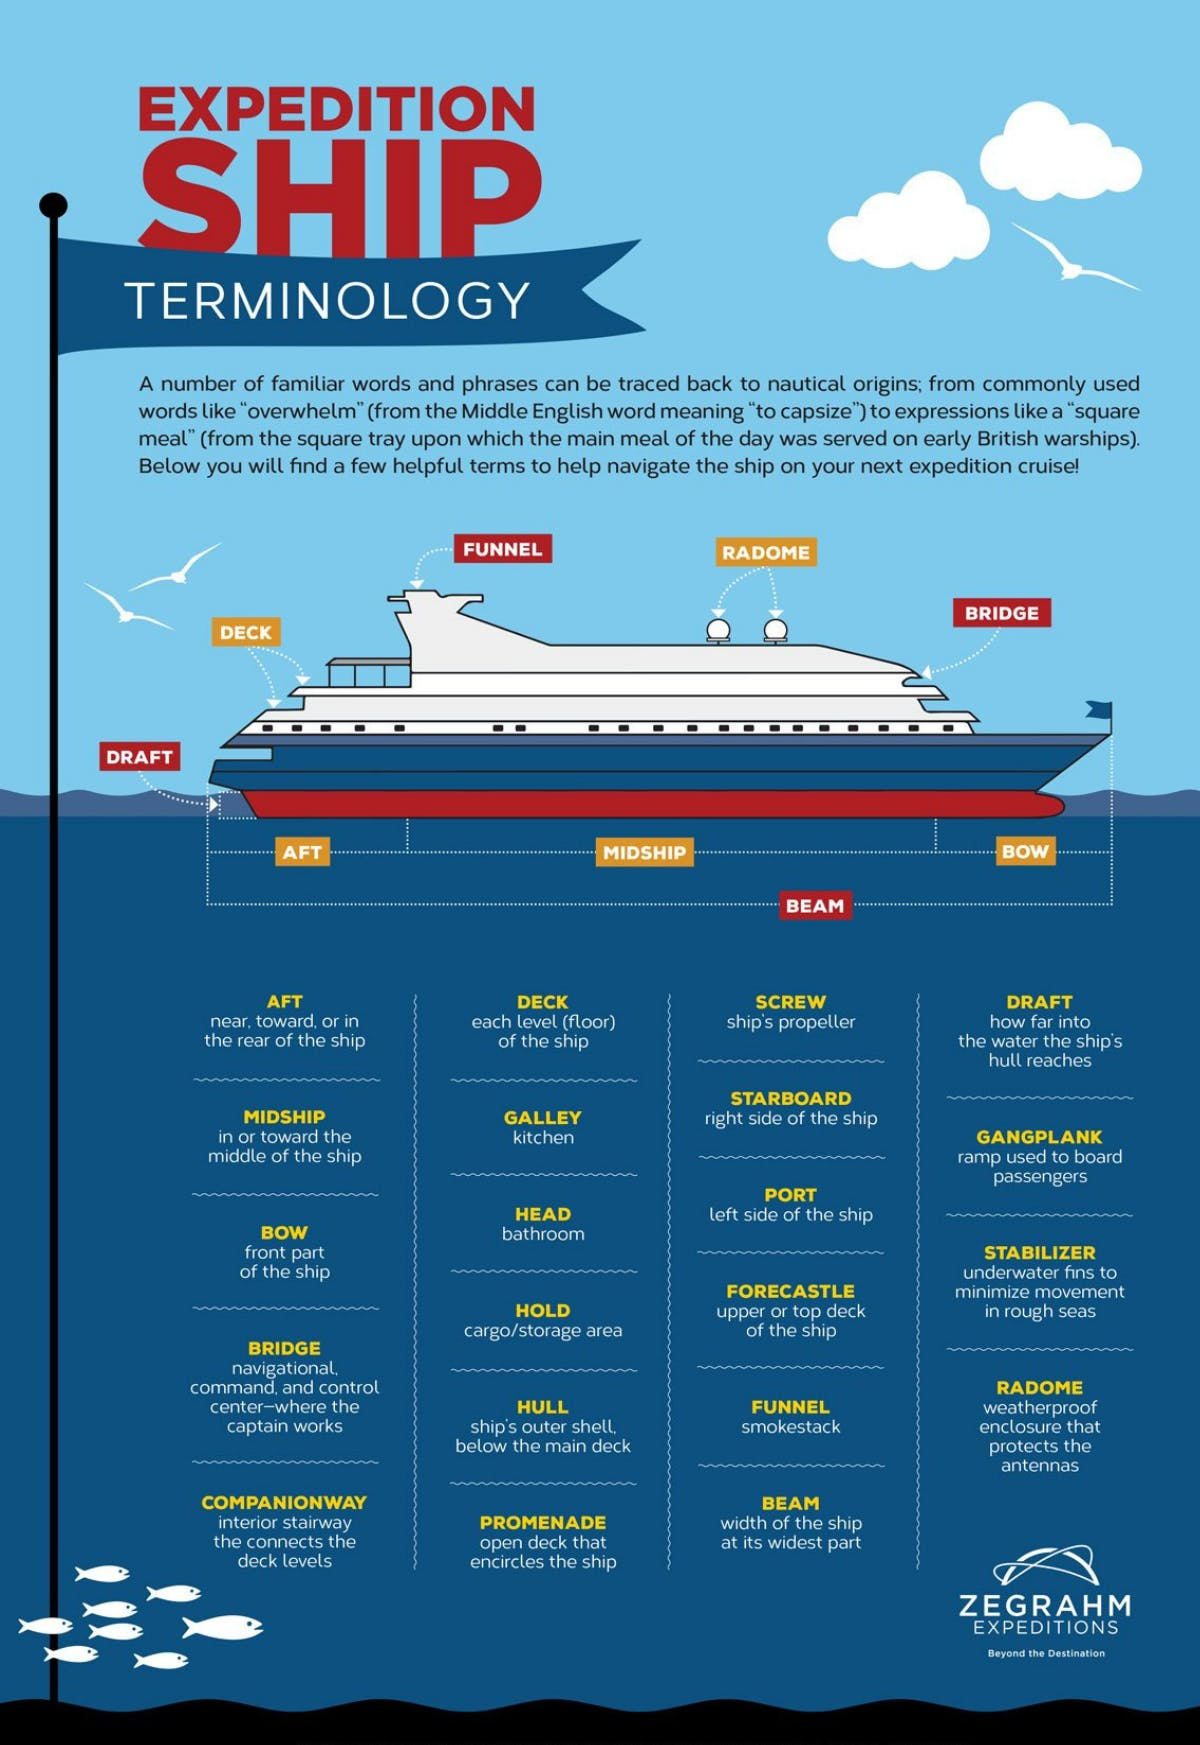 Expedition ship terminology infographic